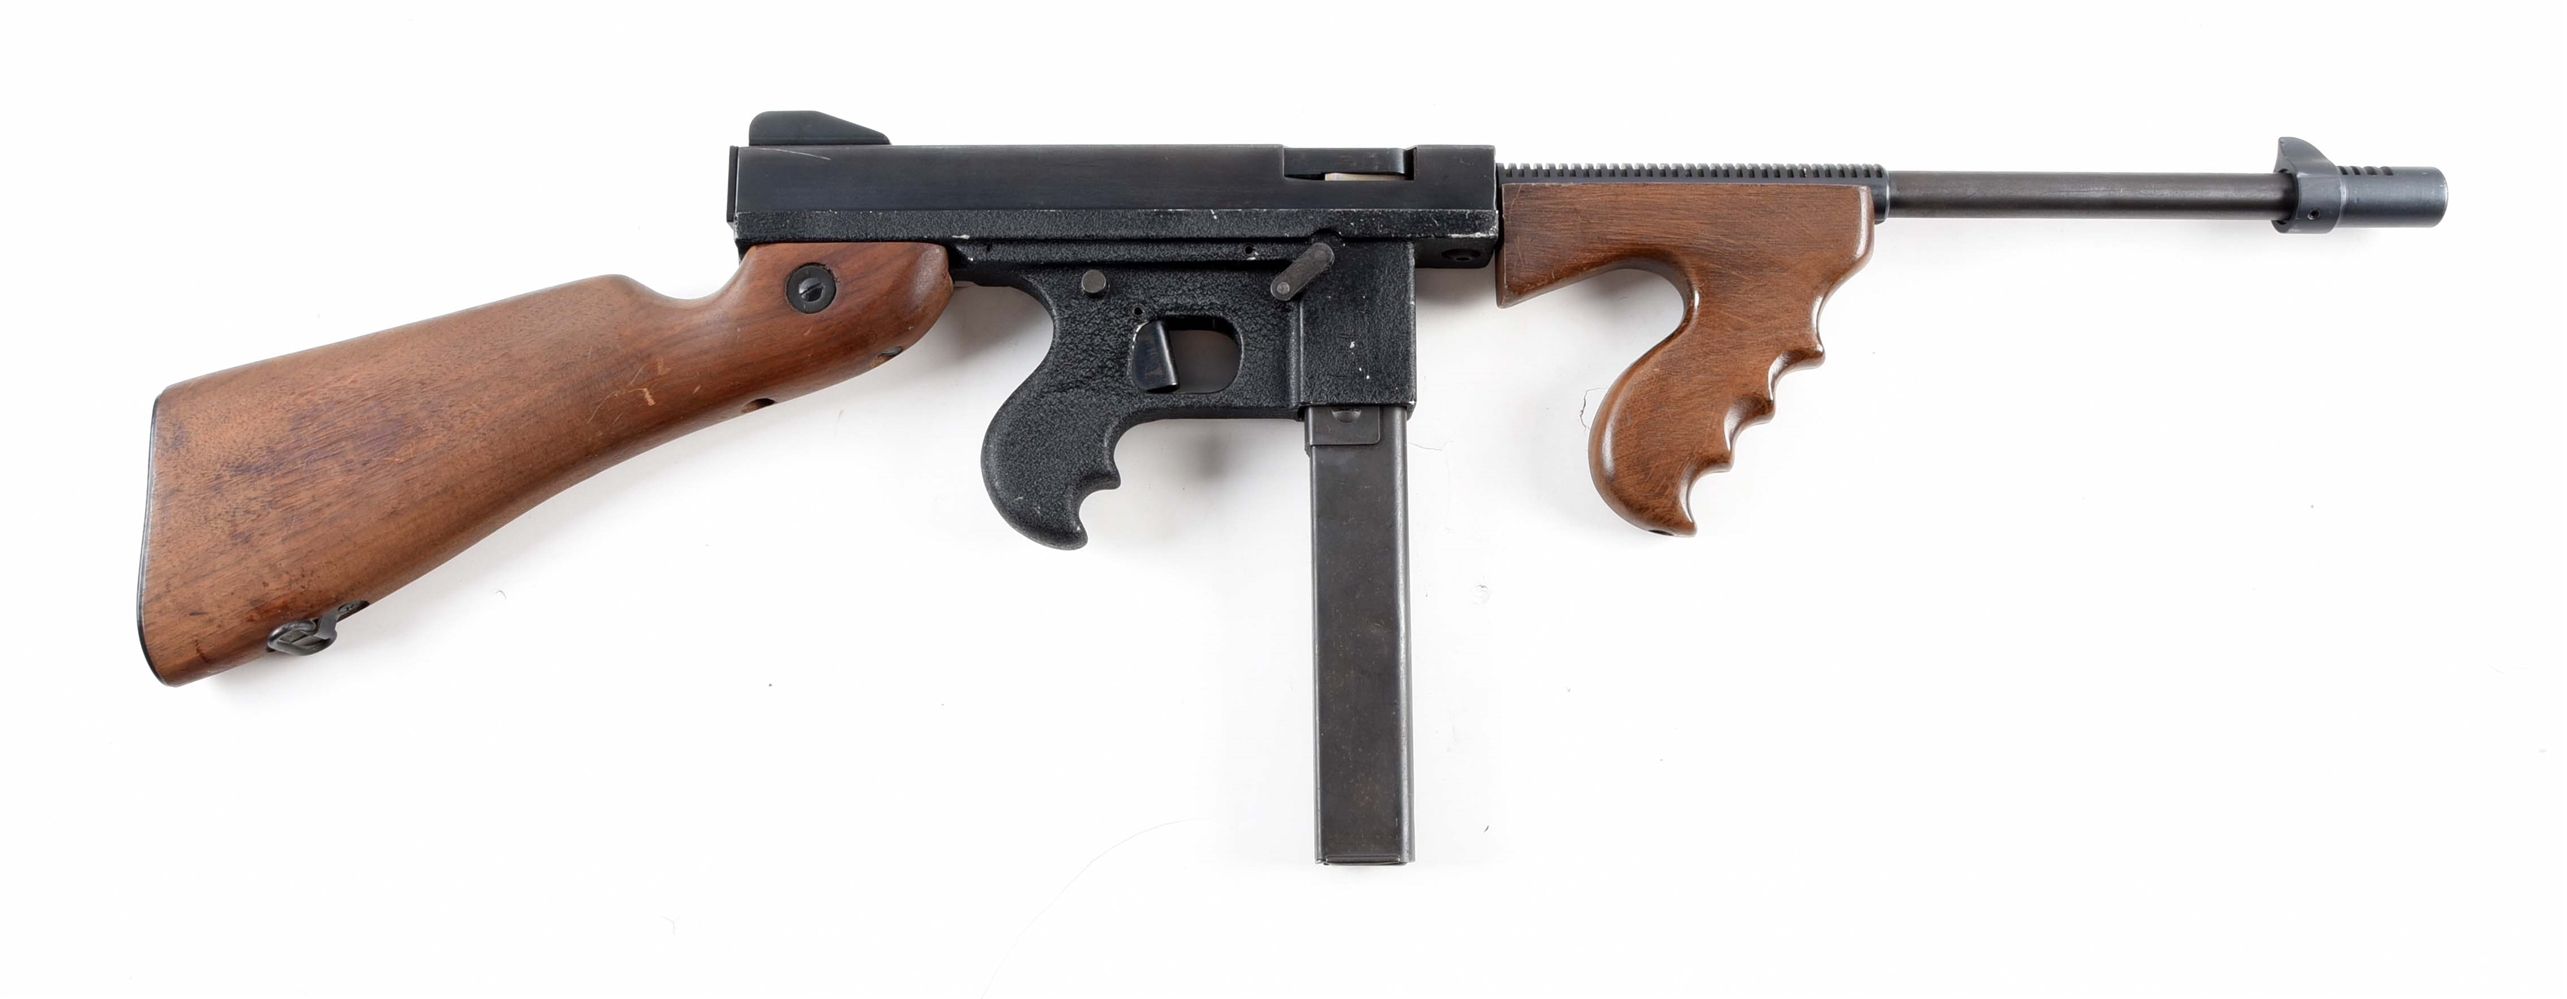 (M) VOLUNTEER ENTERPRISES COMMANDO MK III SEMI-AUTOMATIC .45 ACP CARBINE.